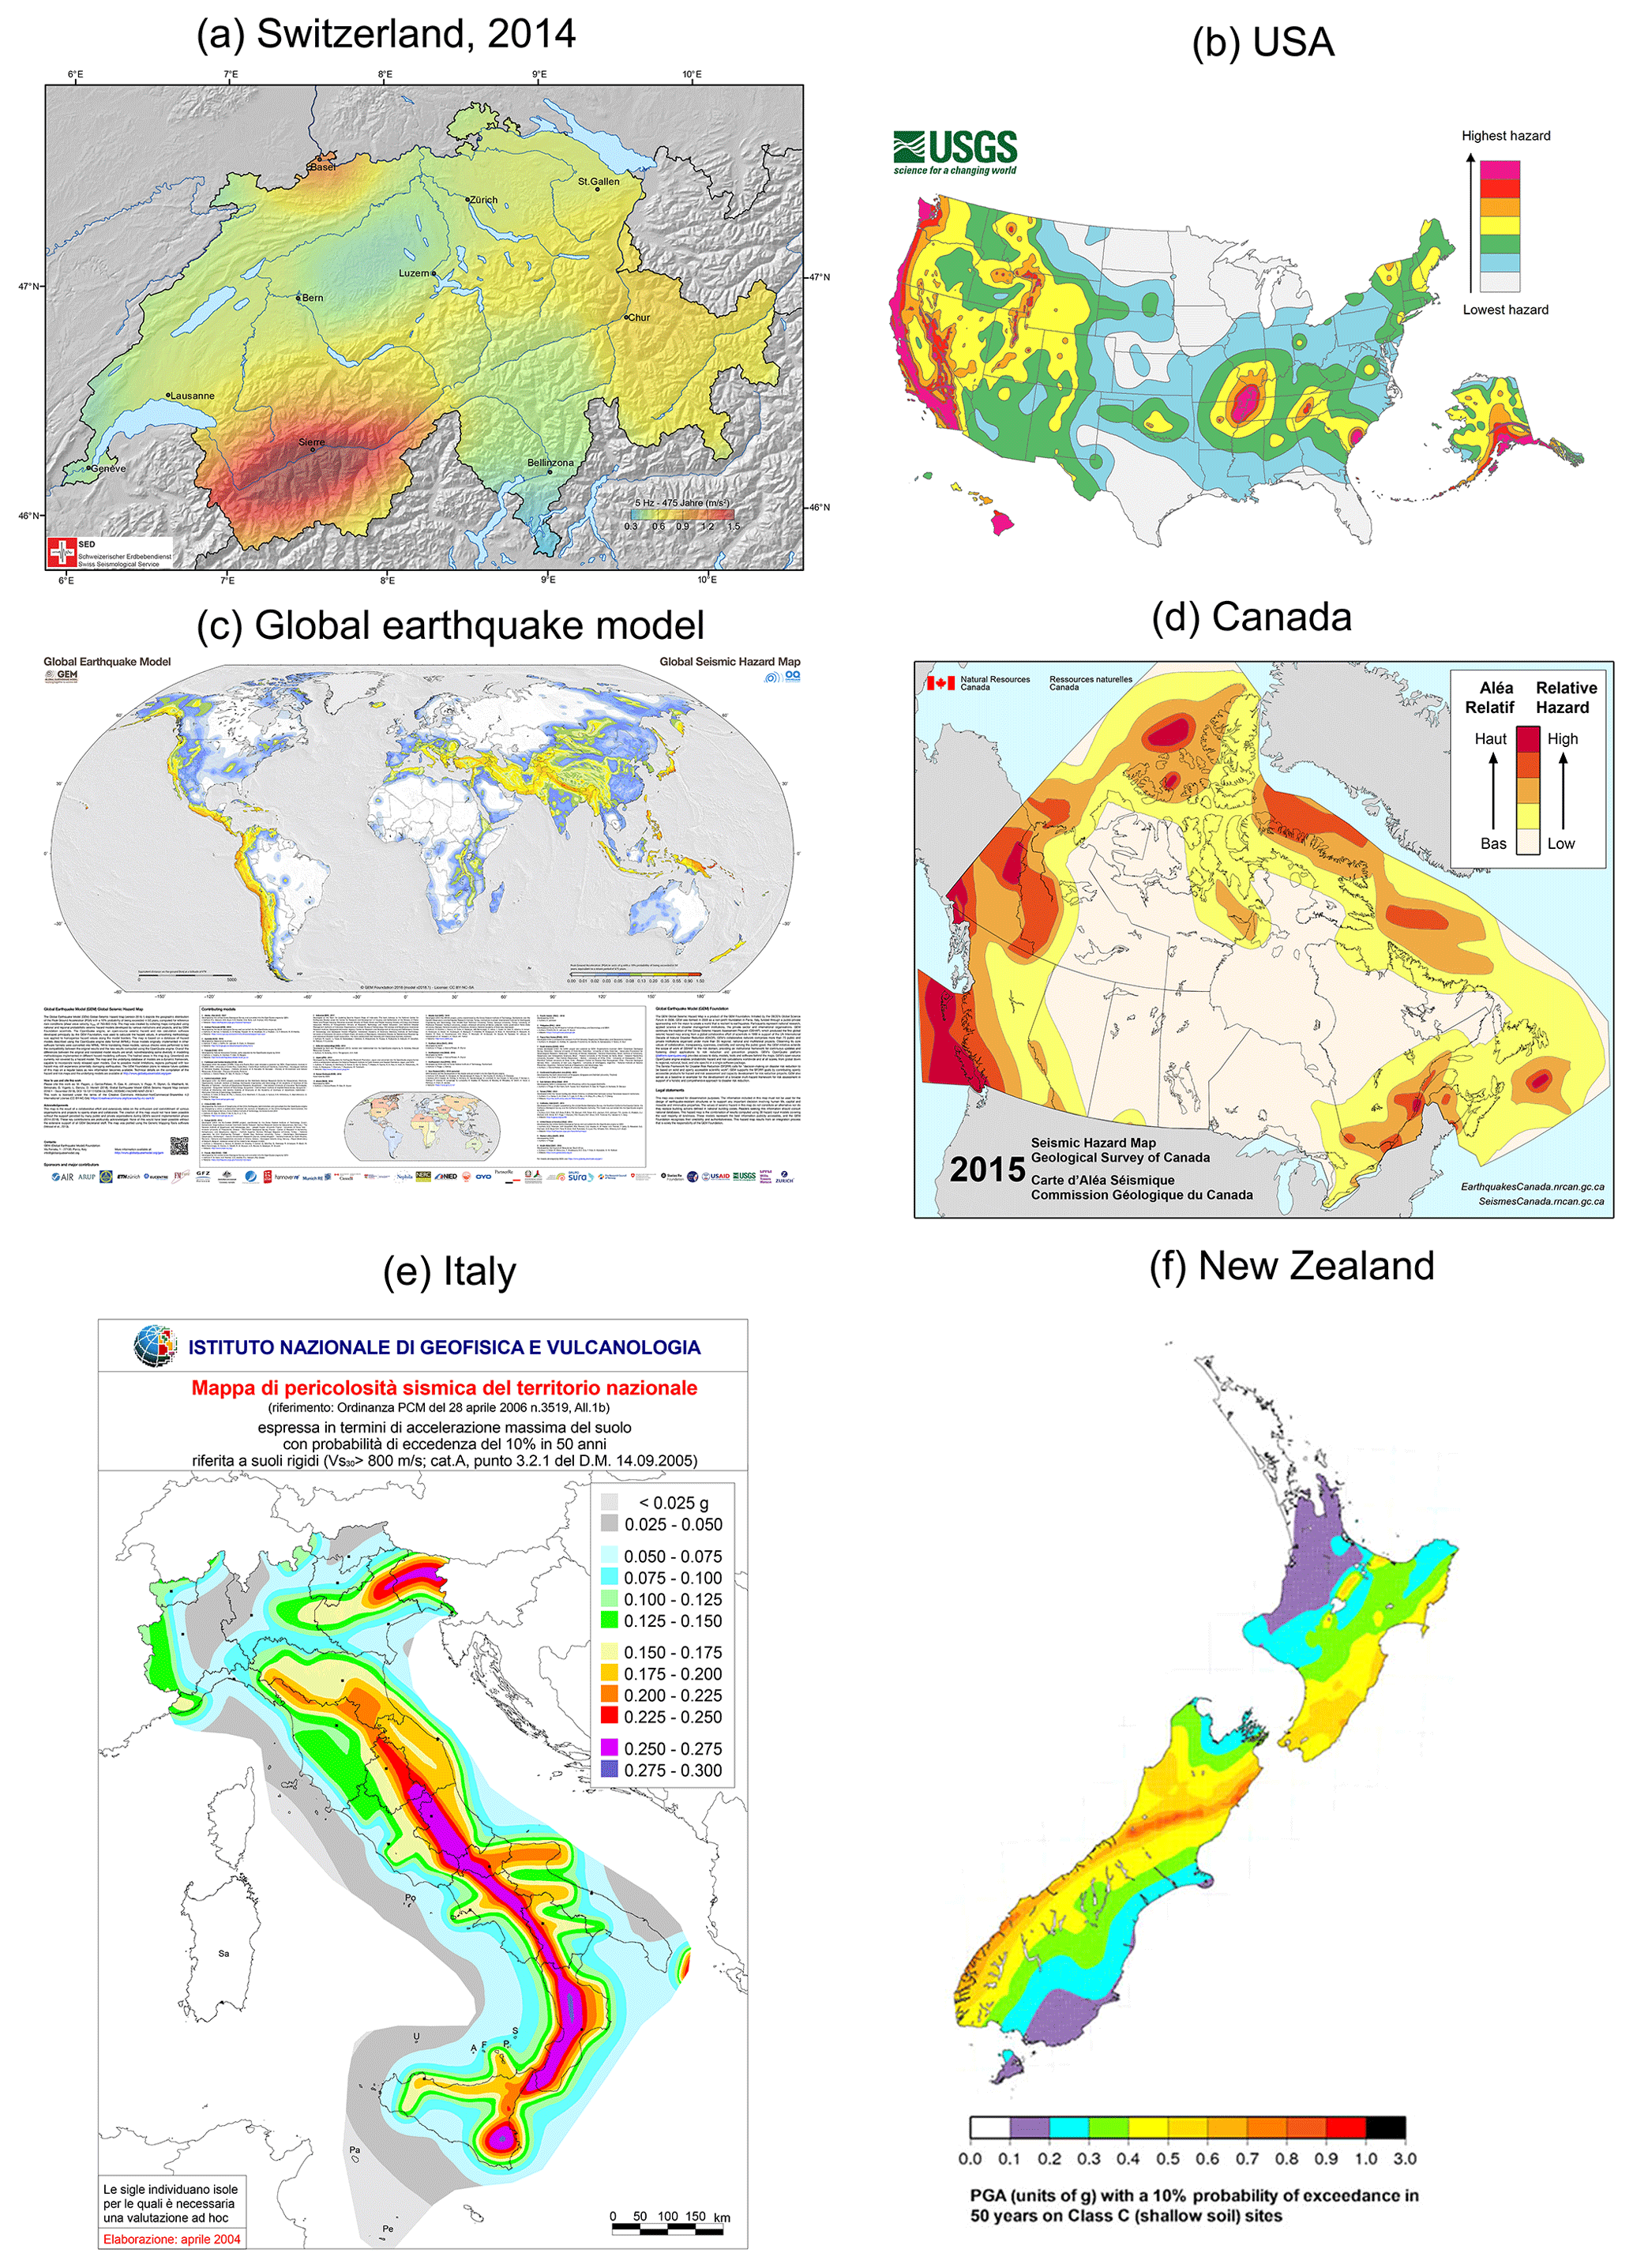 NHESS - Difficulties in explaining complex issues with maps ...